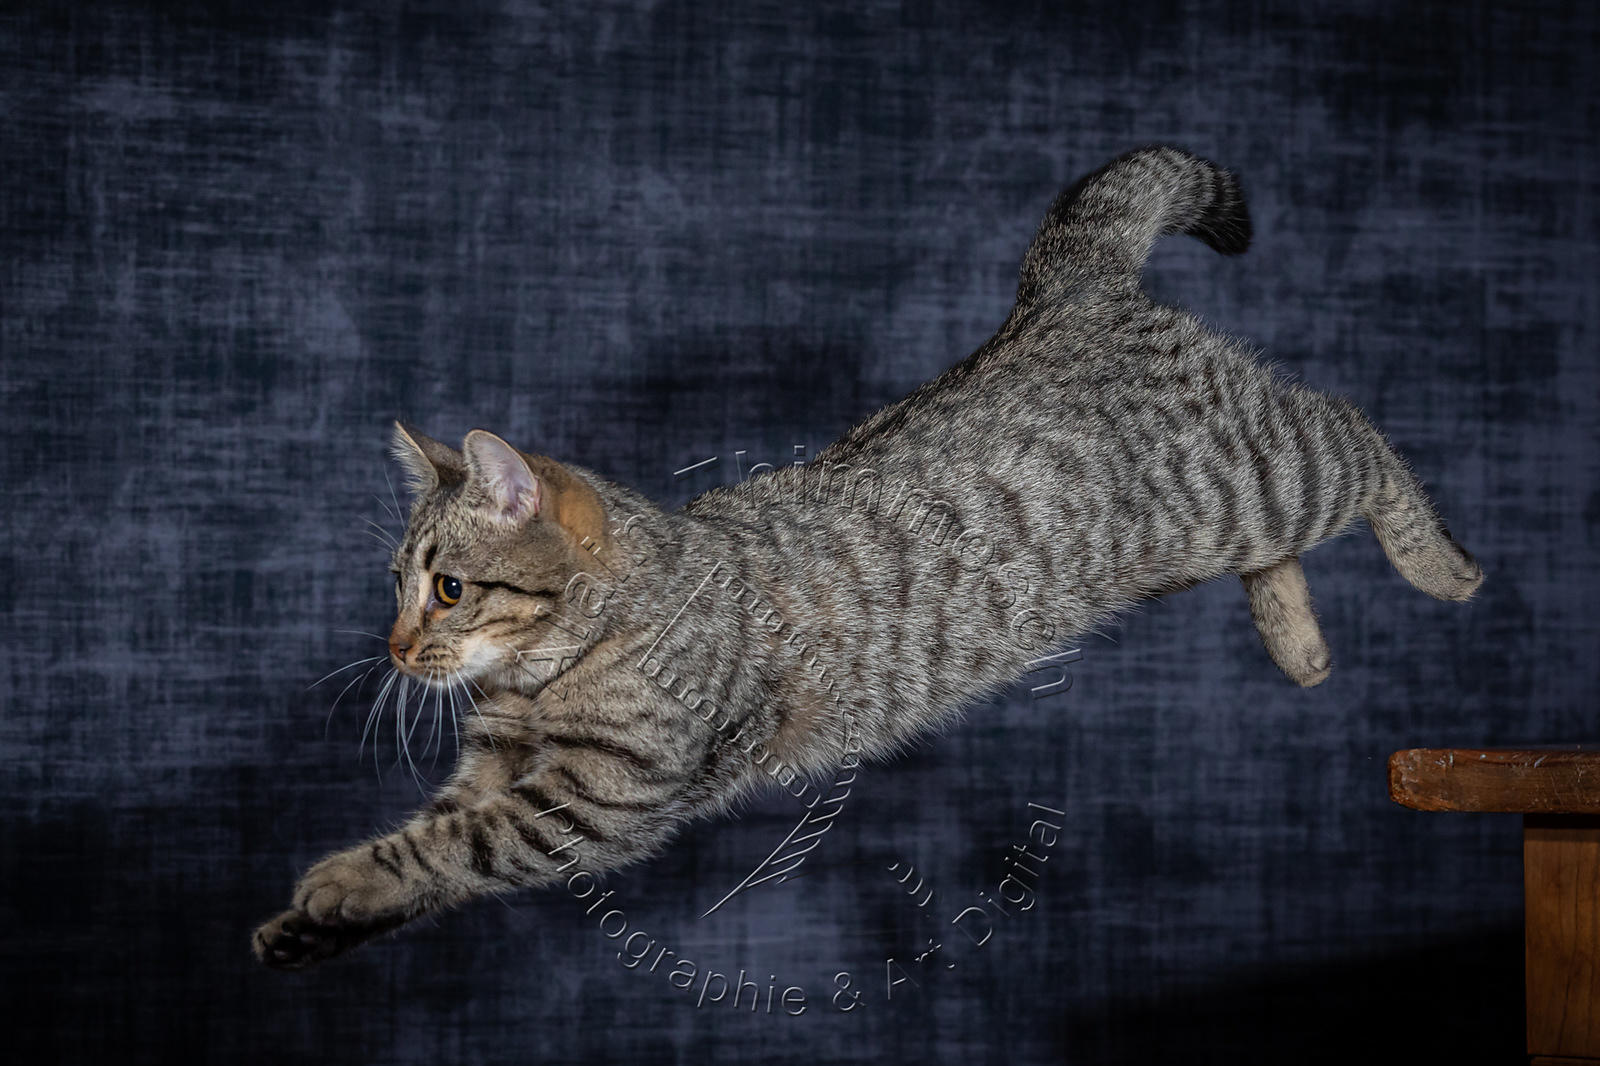 Photographie-Alain-Thimmesch-Chat-1096